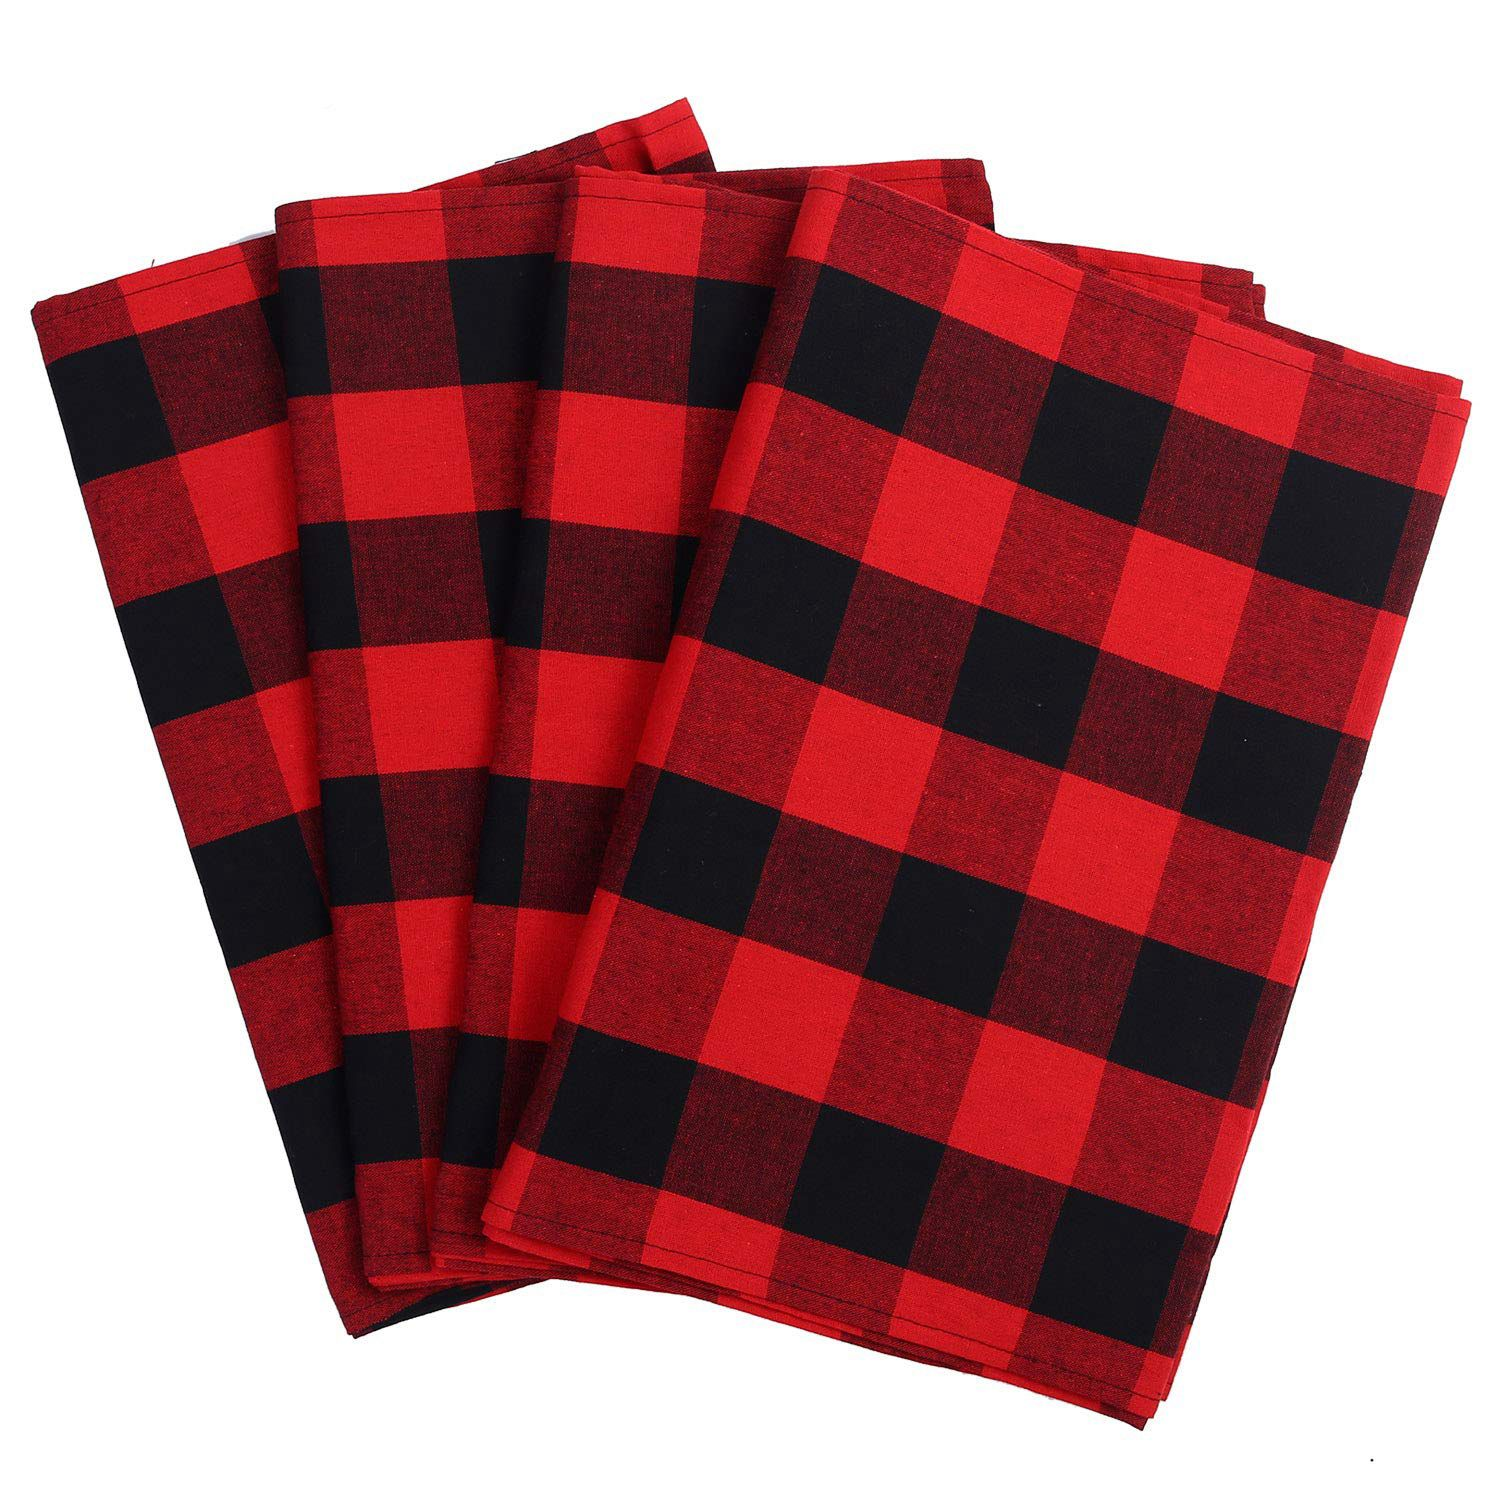 4-Pack-Checkered-Table-Runner-Cotton-Plaid-Table-Runner-Modern-Plaid-Design-U2L6 thumbnail 4